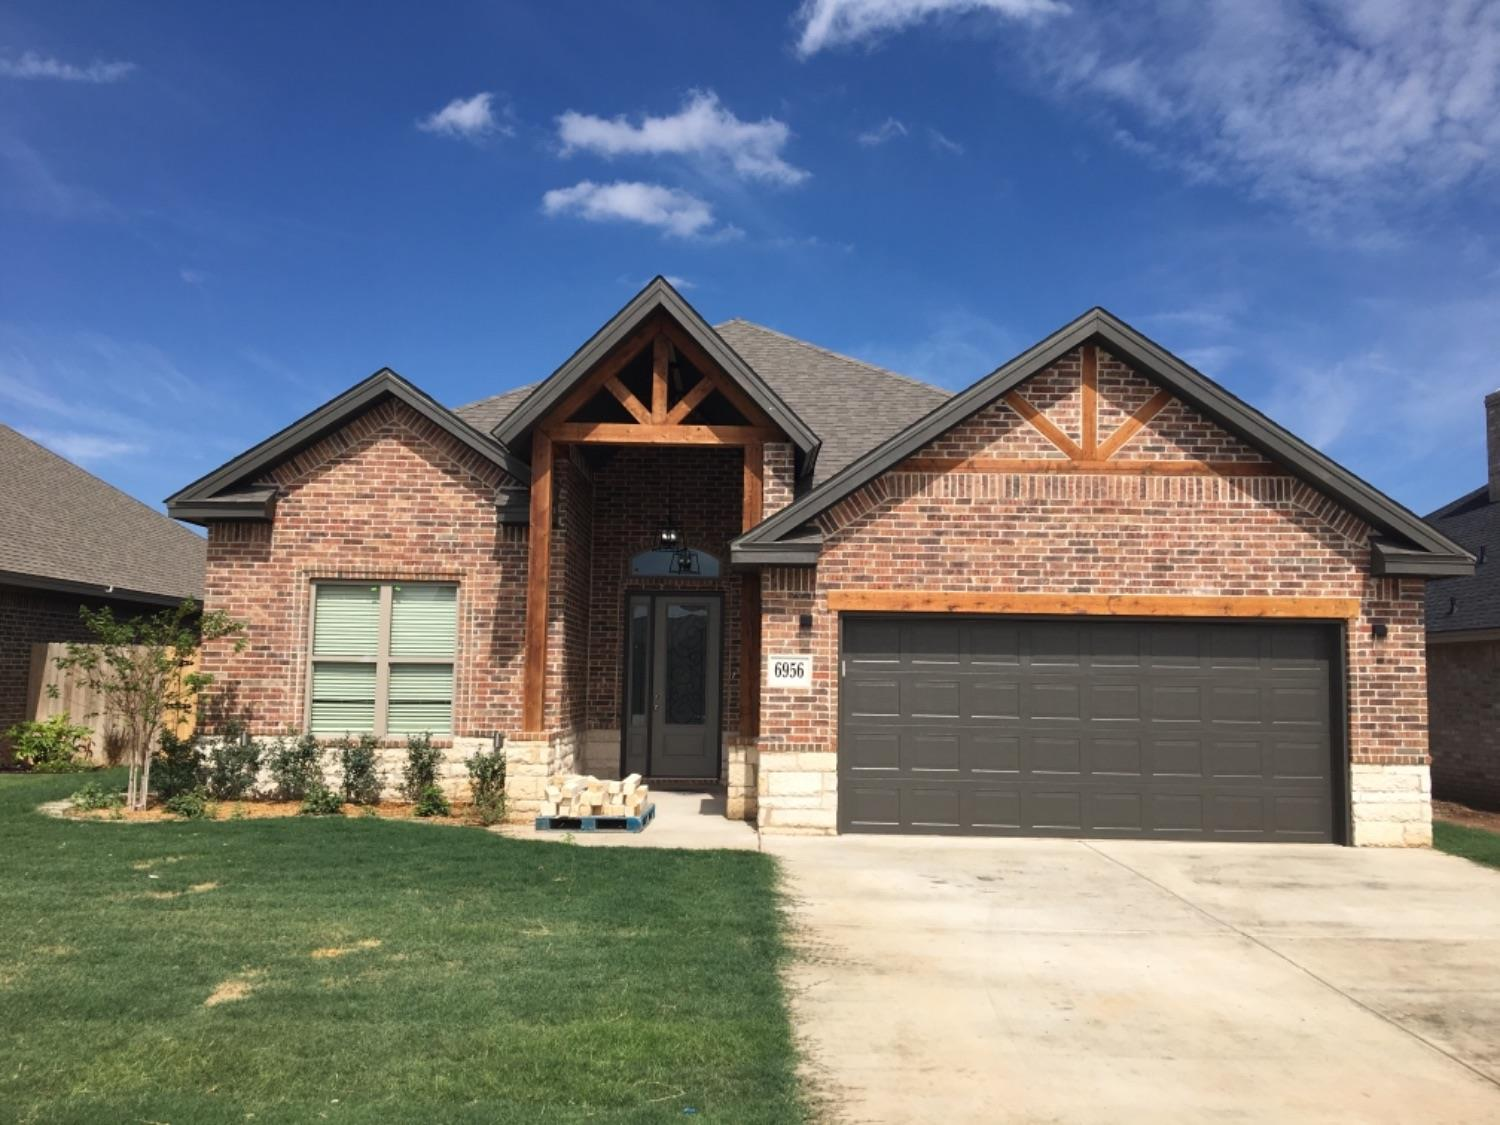 6956 22nd Place, Lubbock in Lubbock County, TX 79407 Home for Sale